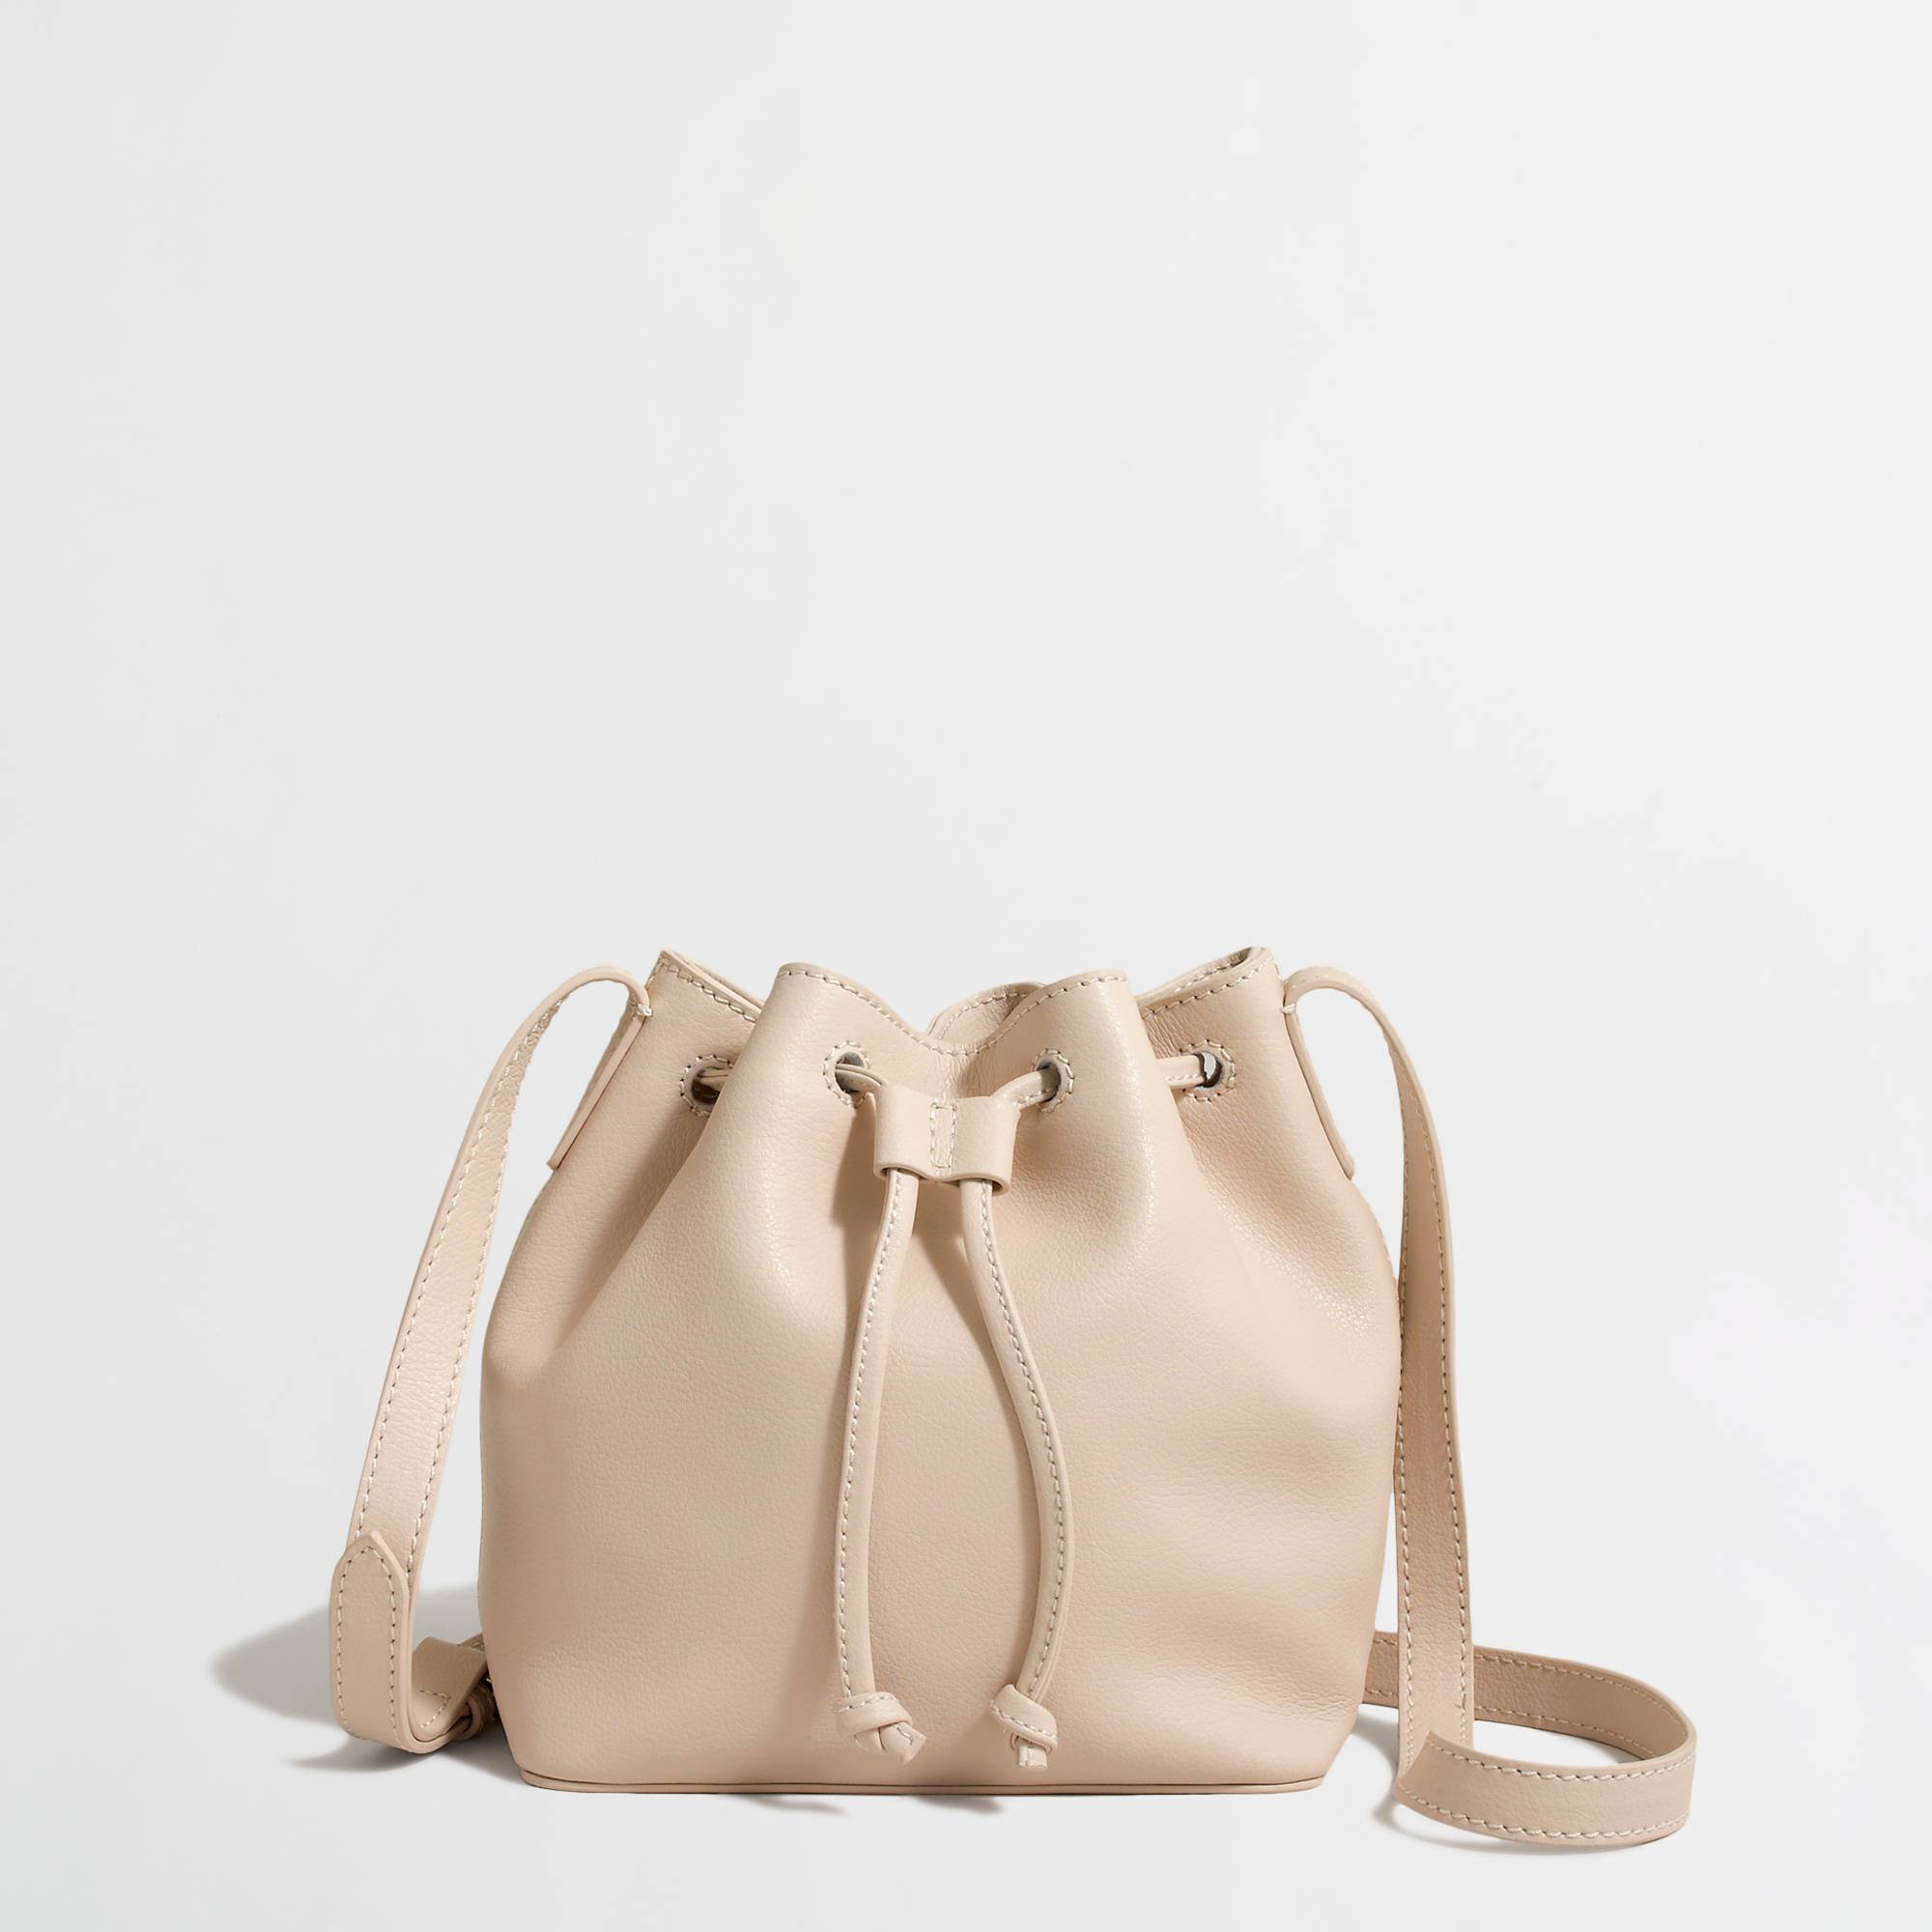 J.crew Factory Leather Mini Bucket Bag in Natural